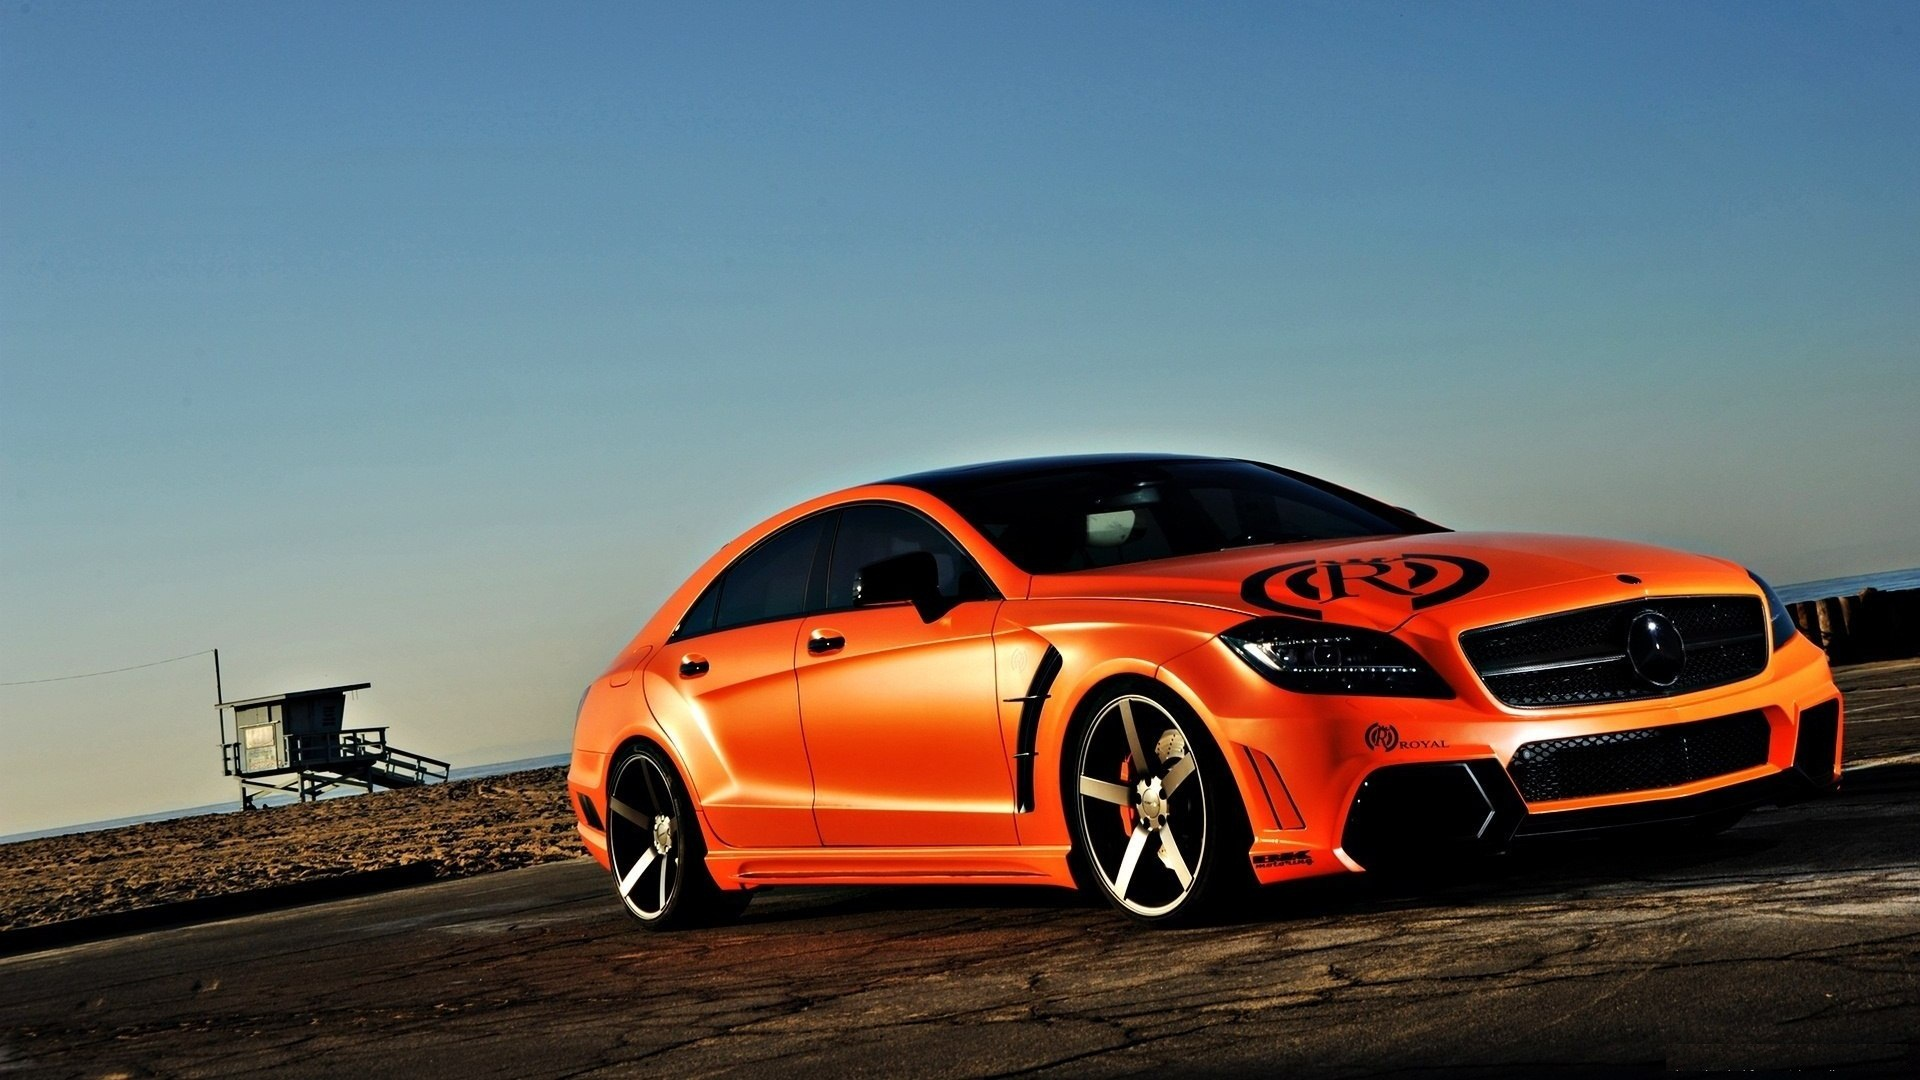 Royal Mercedes Benz-HD Wallpapers